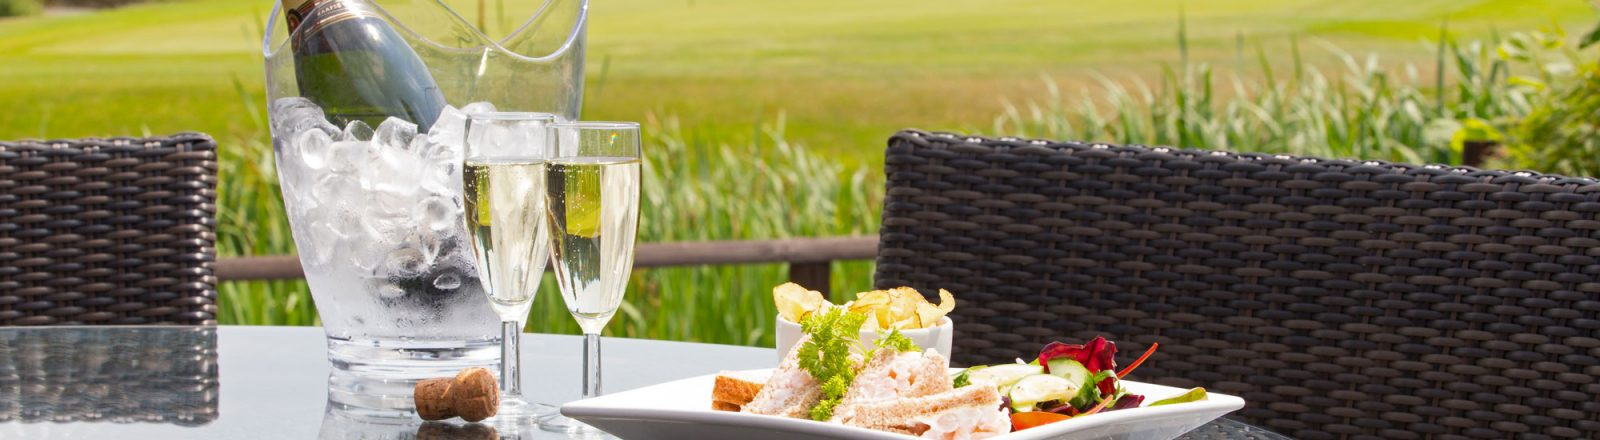 Aldwickbury Golf Club champagne on terrace